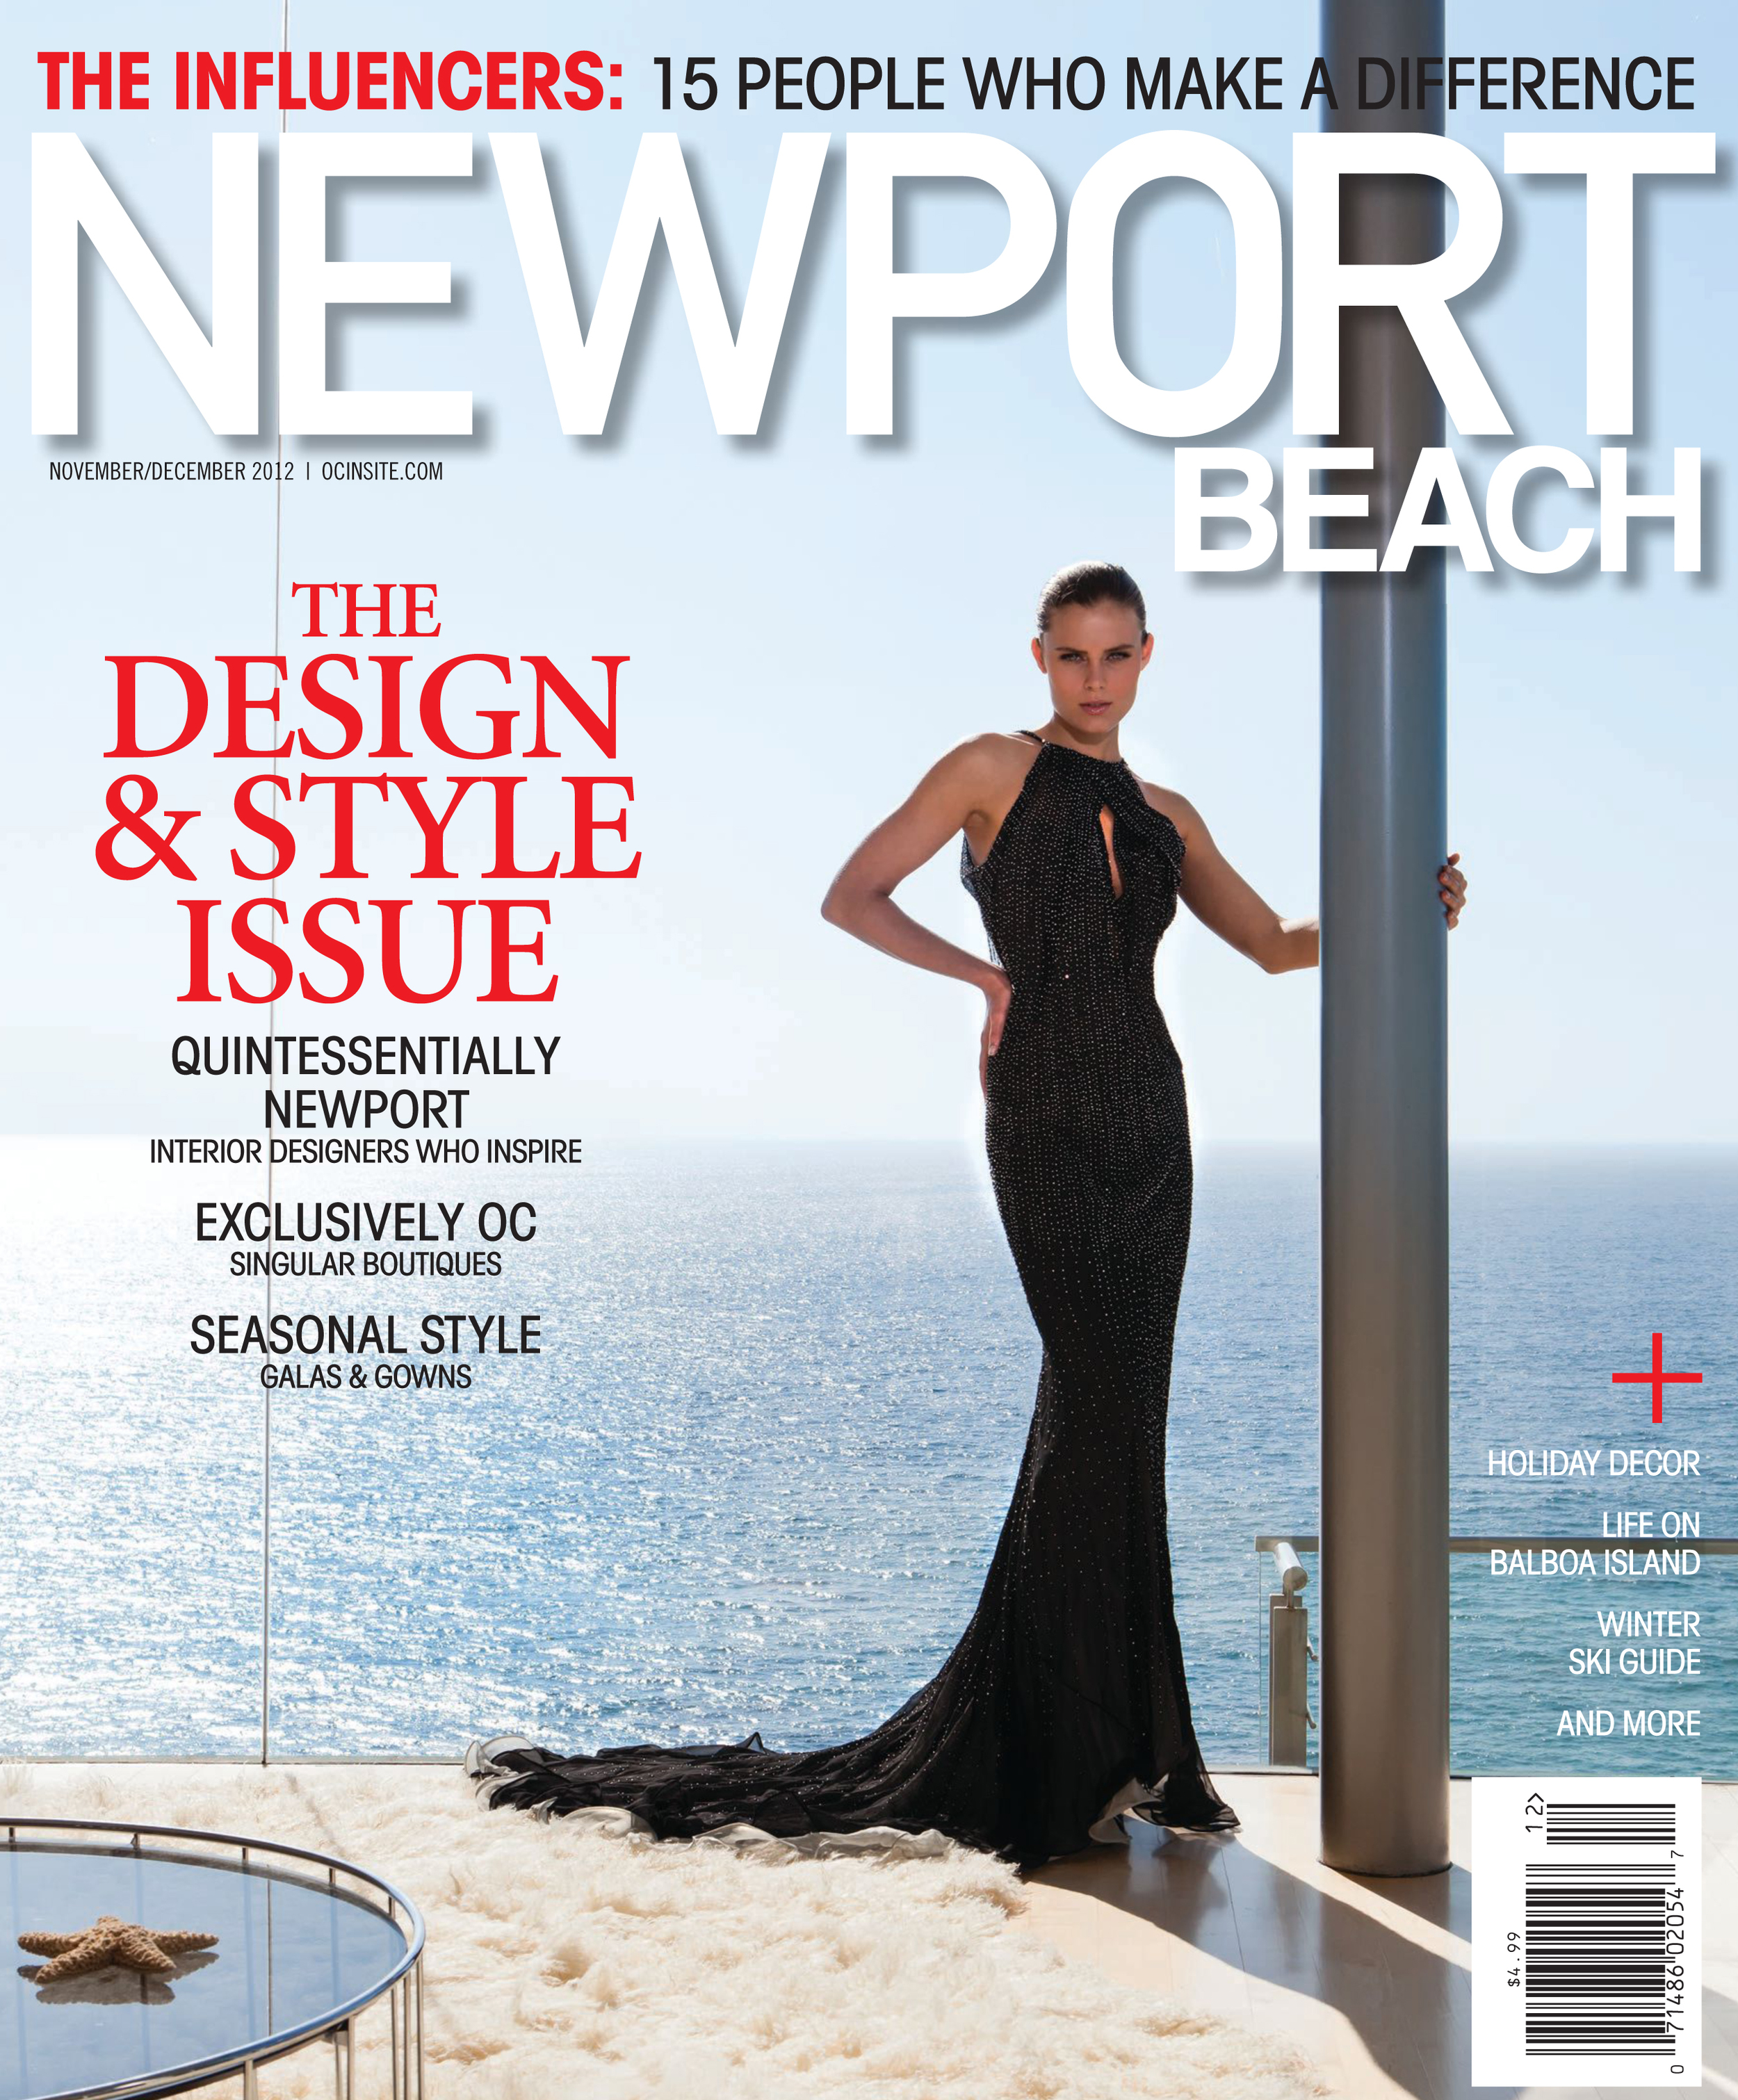 newport beach magazine dec 2012-1.jpg